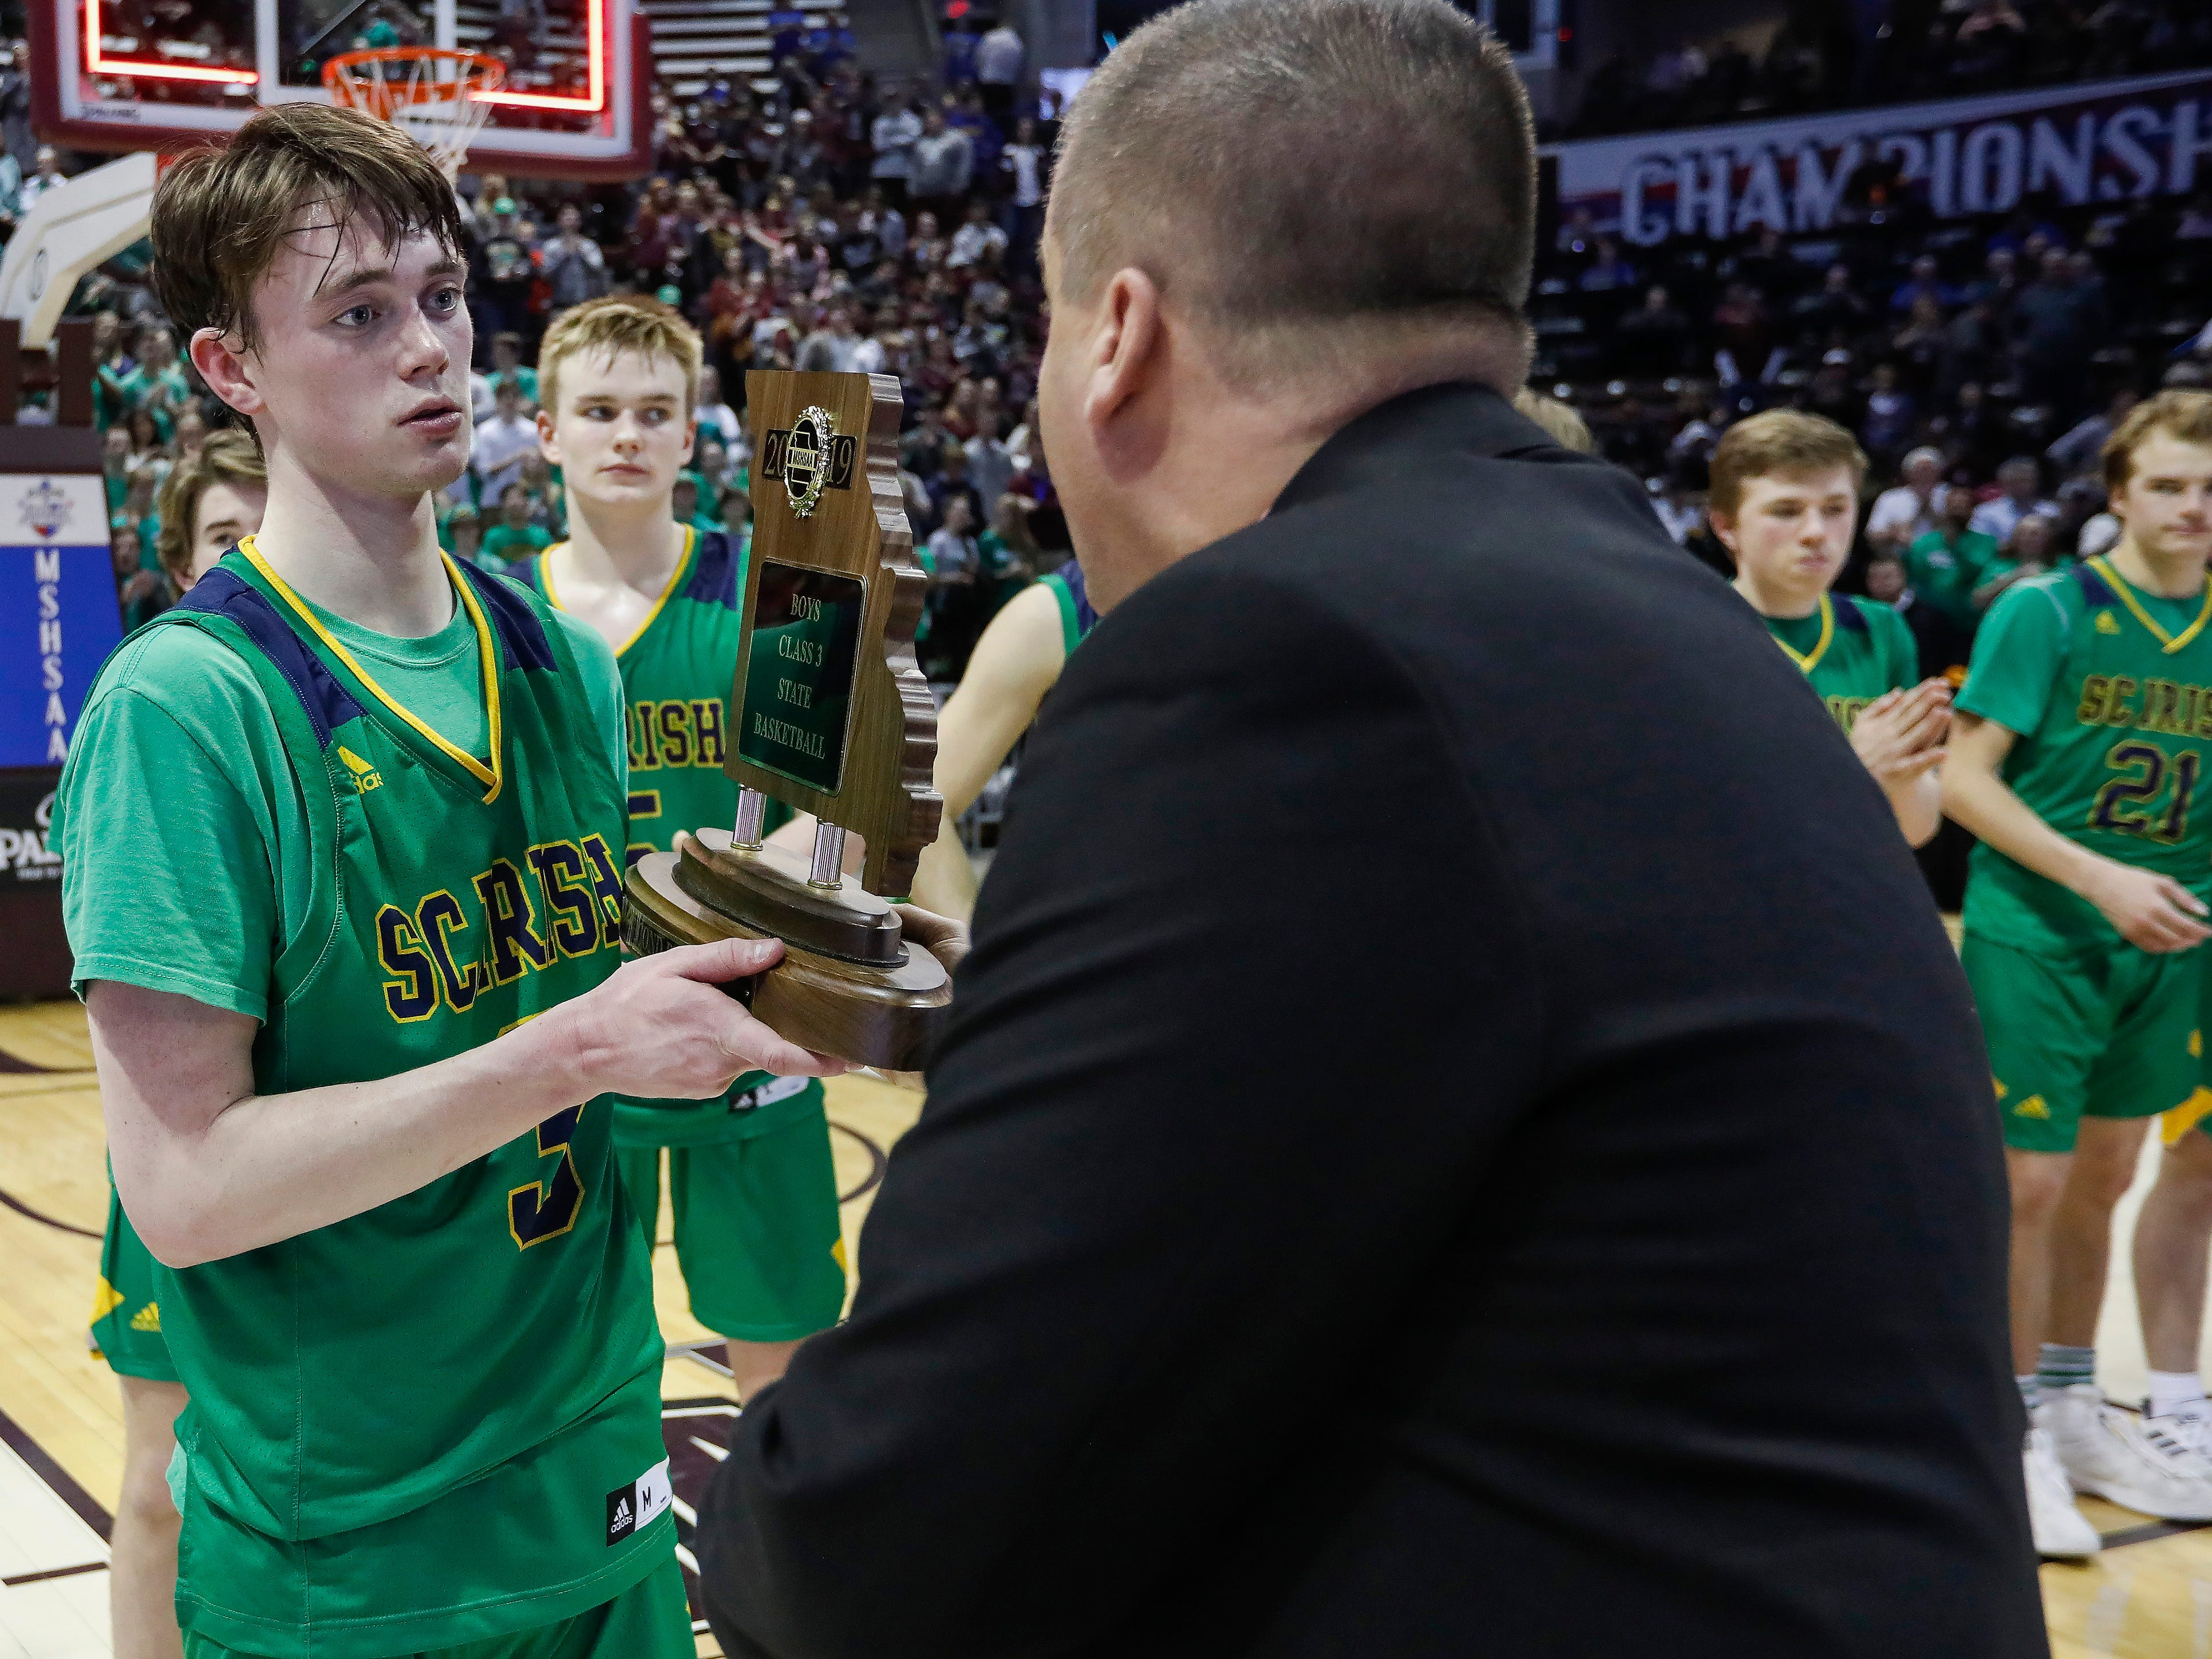 Jake Branham, of Springfield Catholic, accepts the 2nd place trophy after the Irish's 69-59 loss to Vashon in the Class 3 state championship game at JQH Arena on Friday, March 8, 2019.